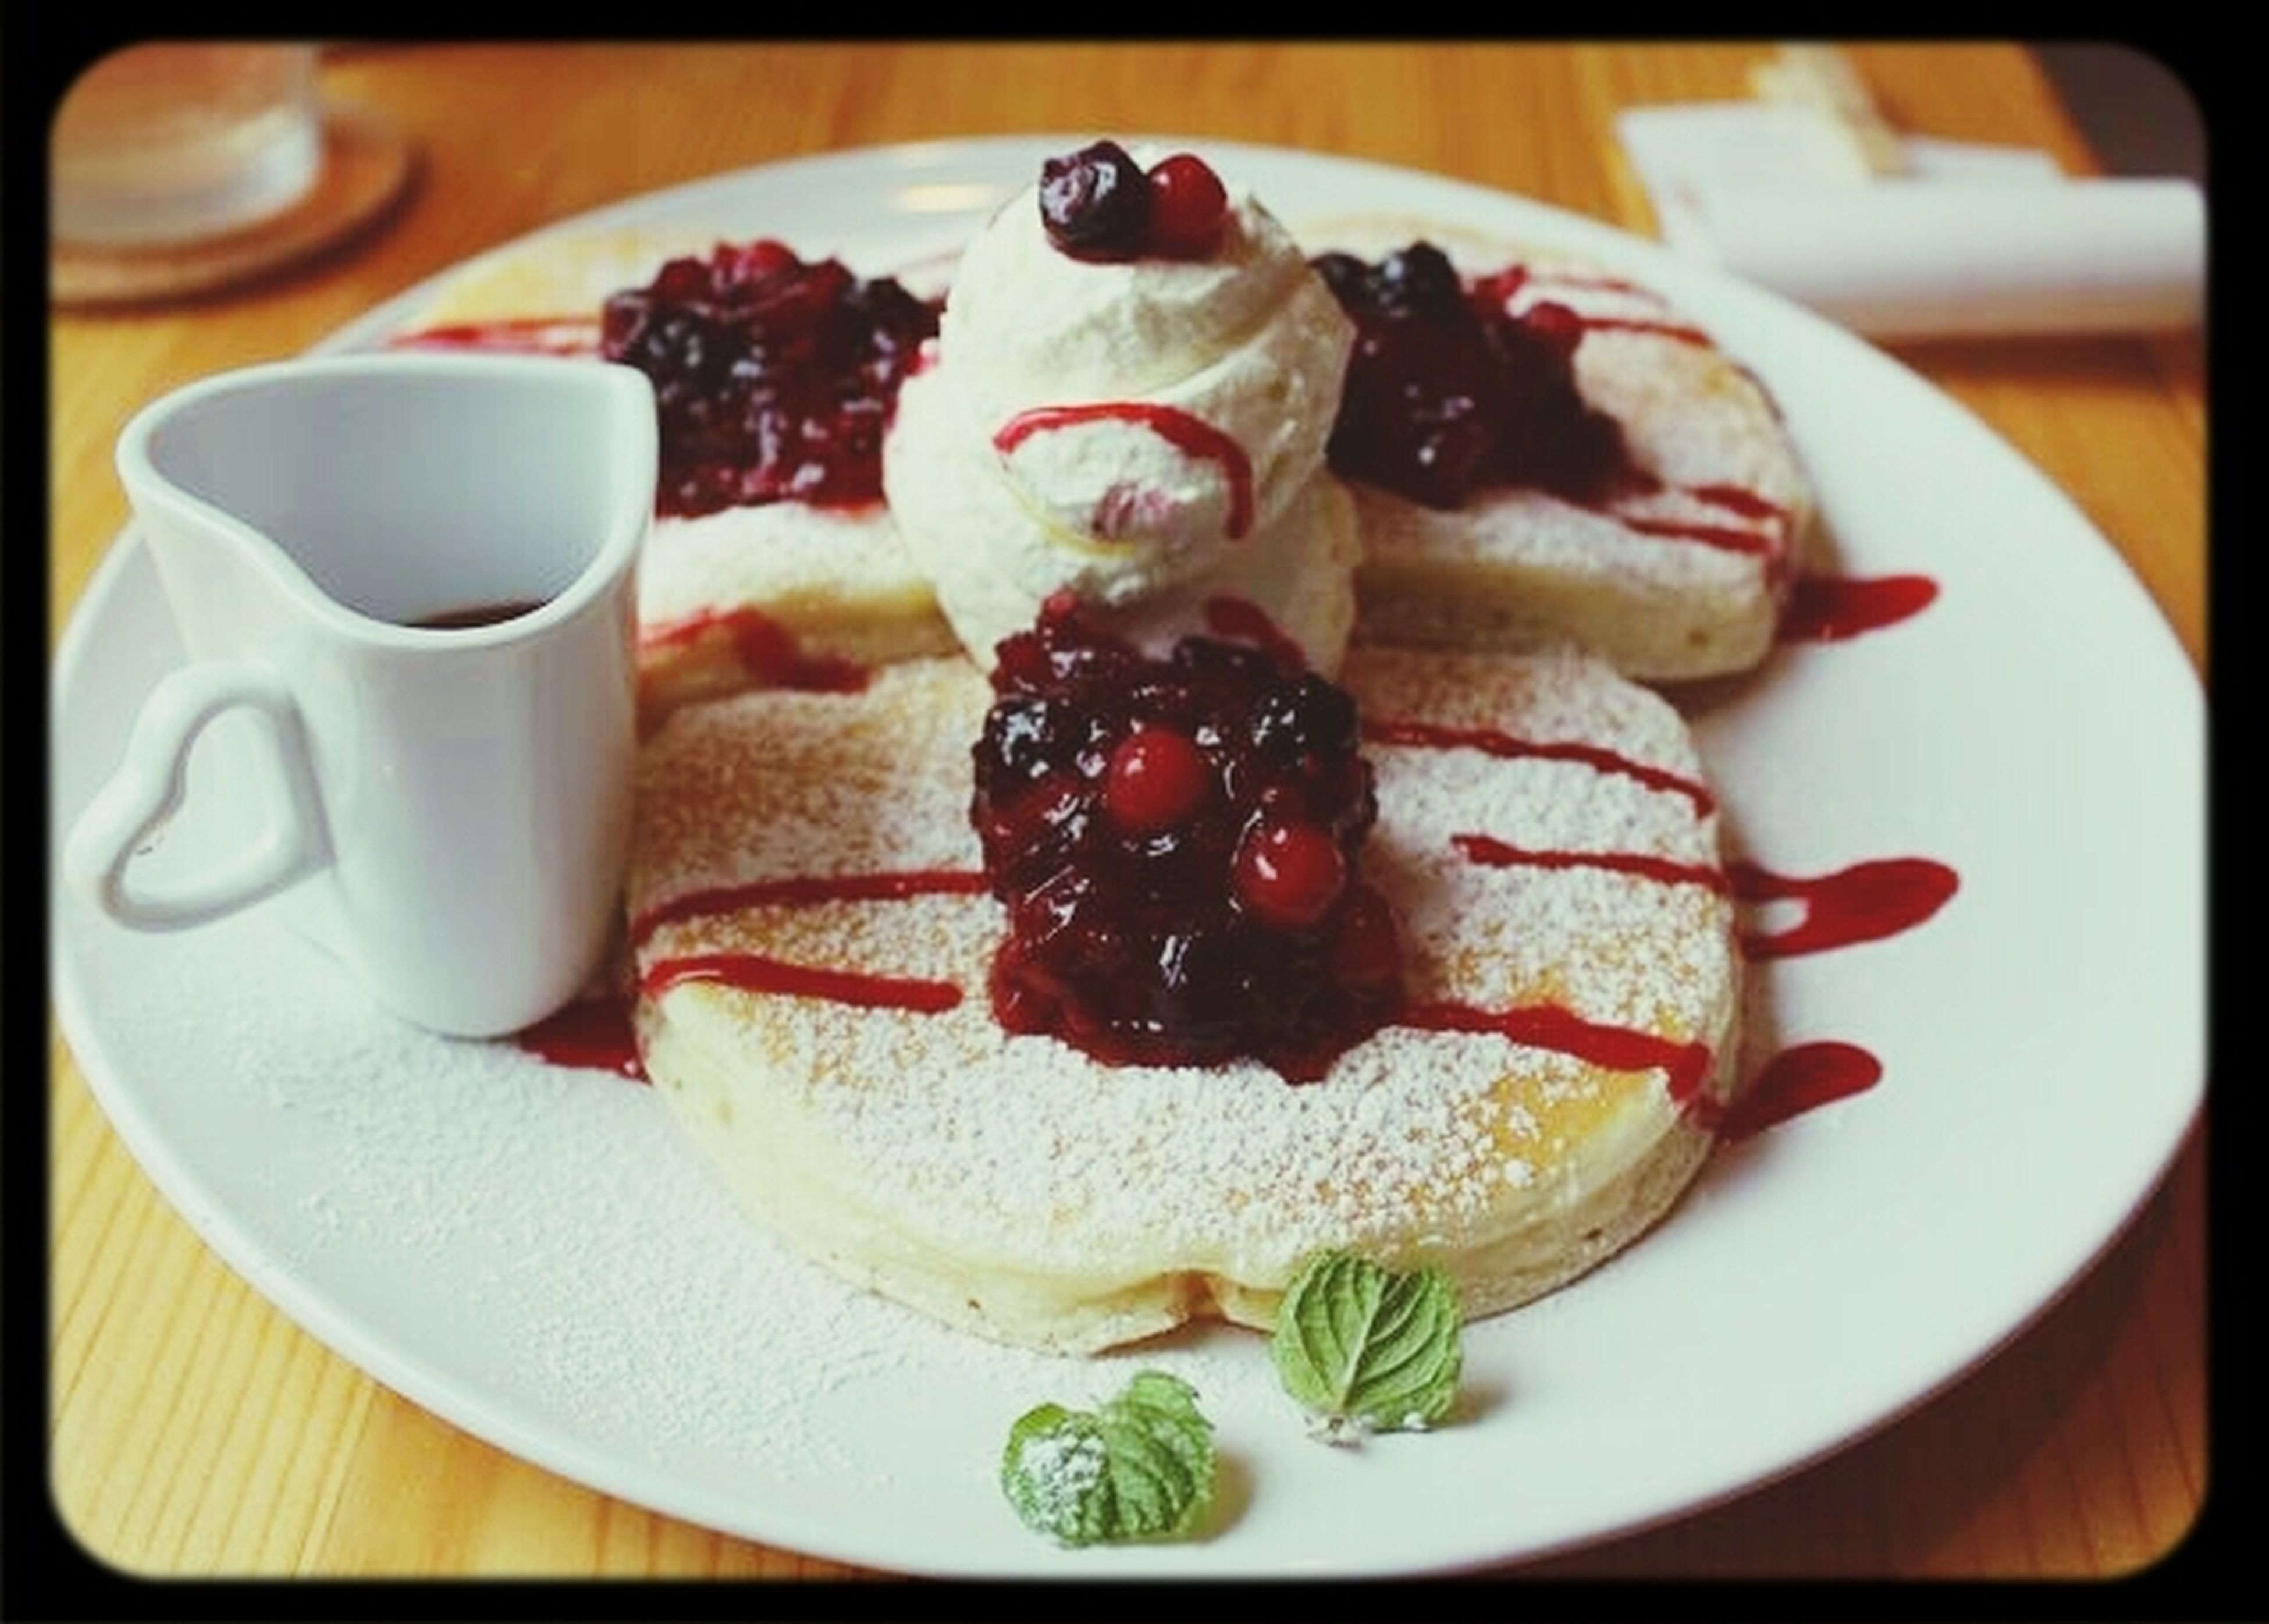 food and drink, food, indoors, freshness, sweet food, ready-to-eat, dessert, plate, still life, indulgence, cake, unhealthy eating, table, serving size, close-up, temptation, transfer print, fruit, breakfast